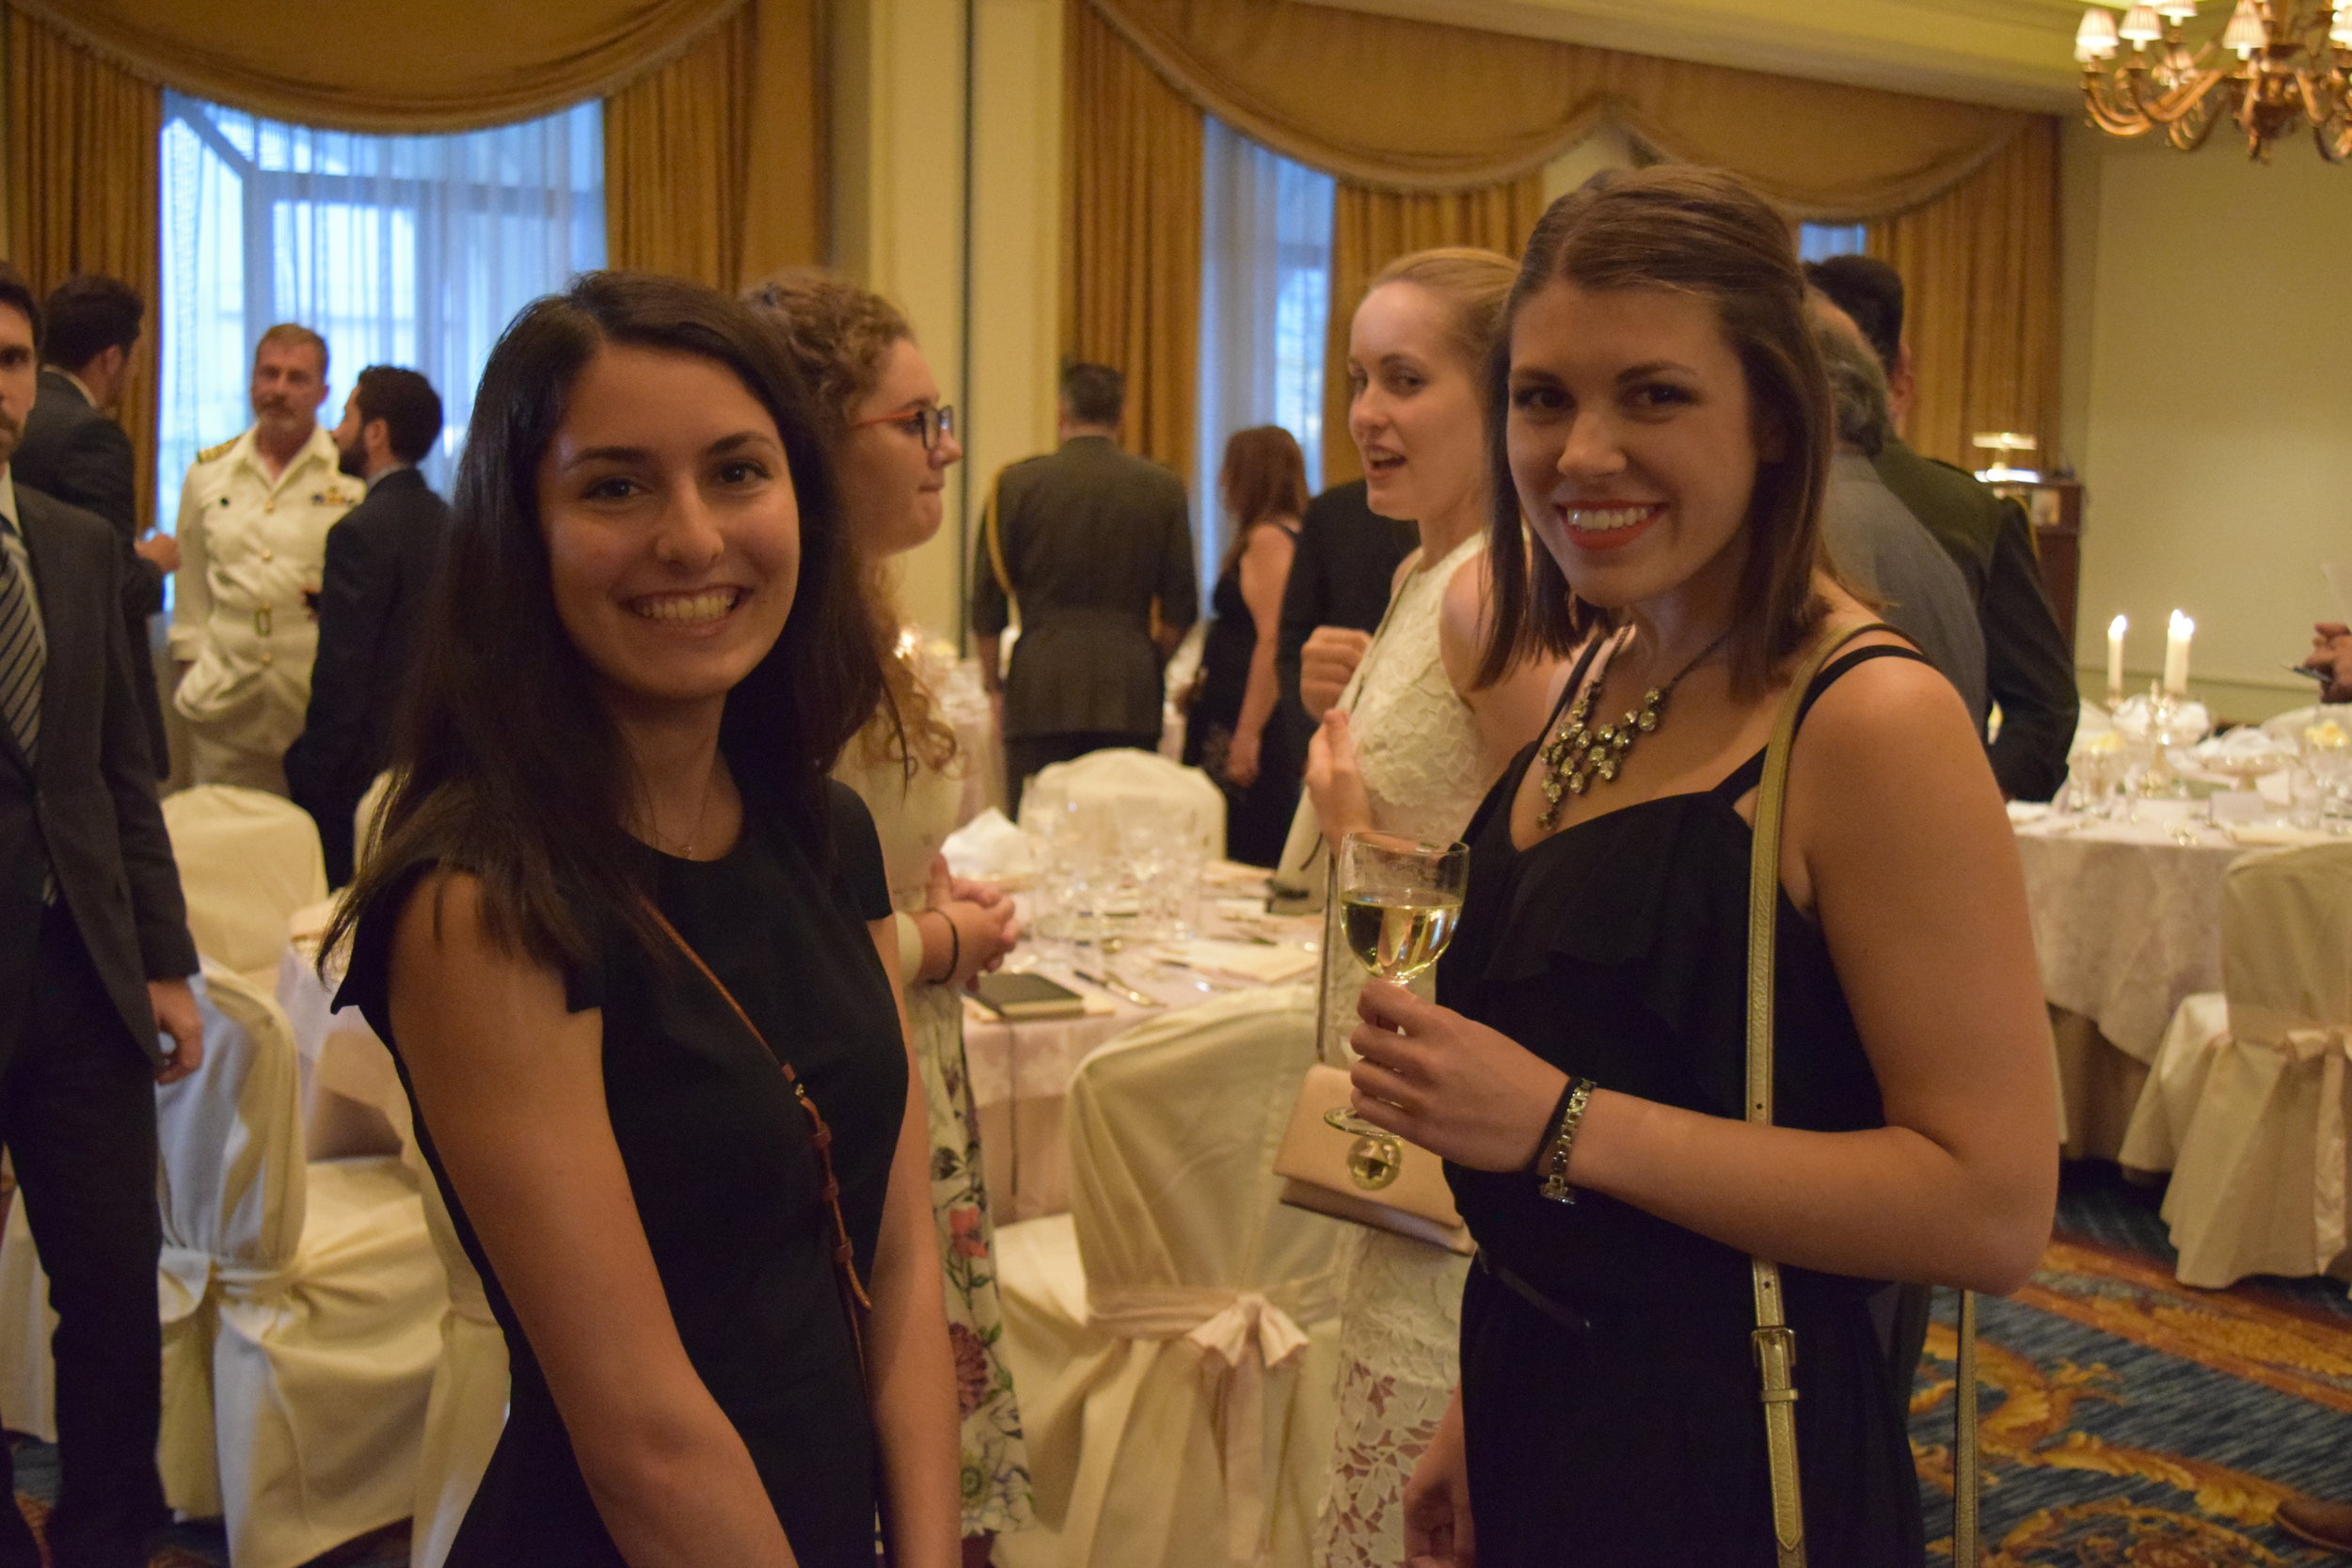 Stephanie Tanzi and Giana Damianos at the Farewell Dinner.